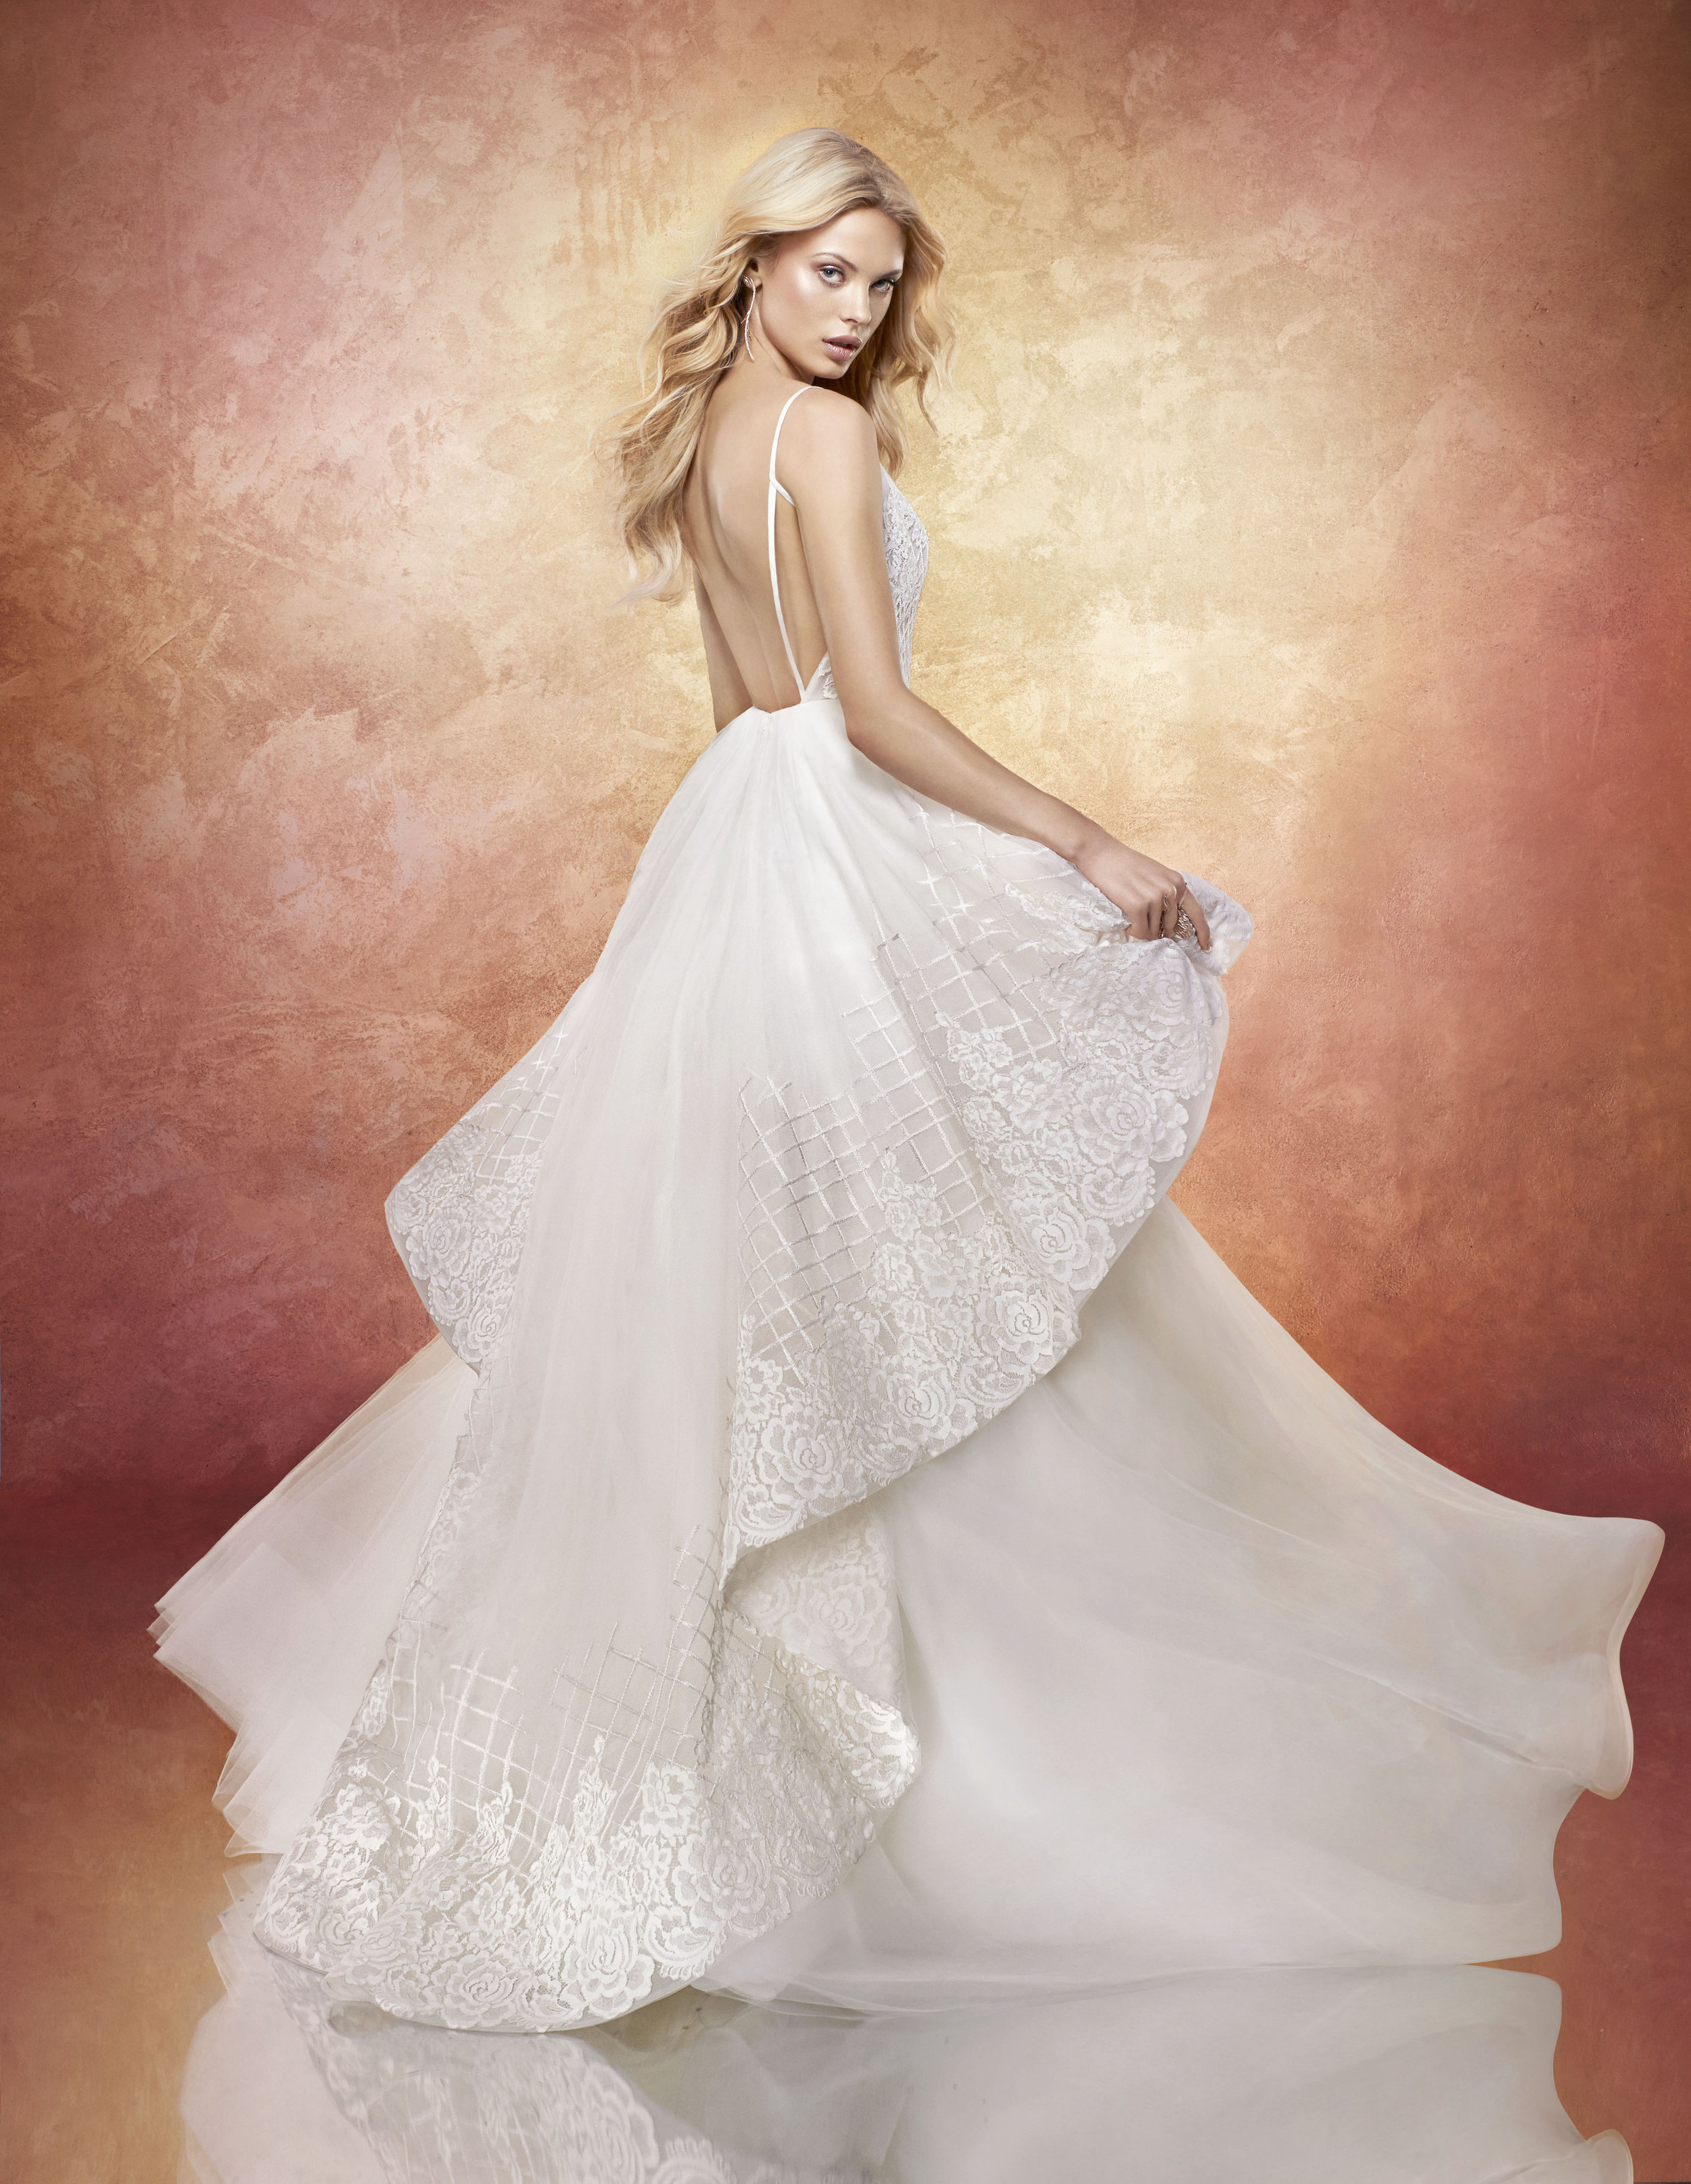 hayley-paige-bridal-spring-2017-style-6702-hollace_1.jpg